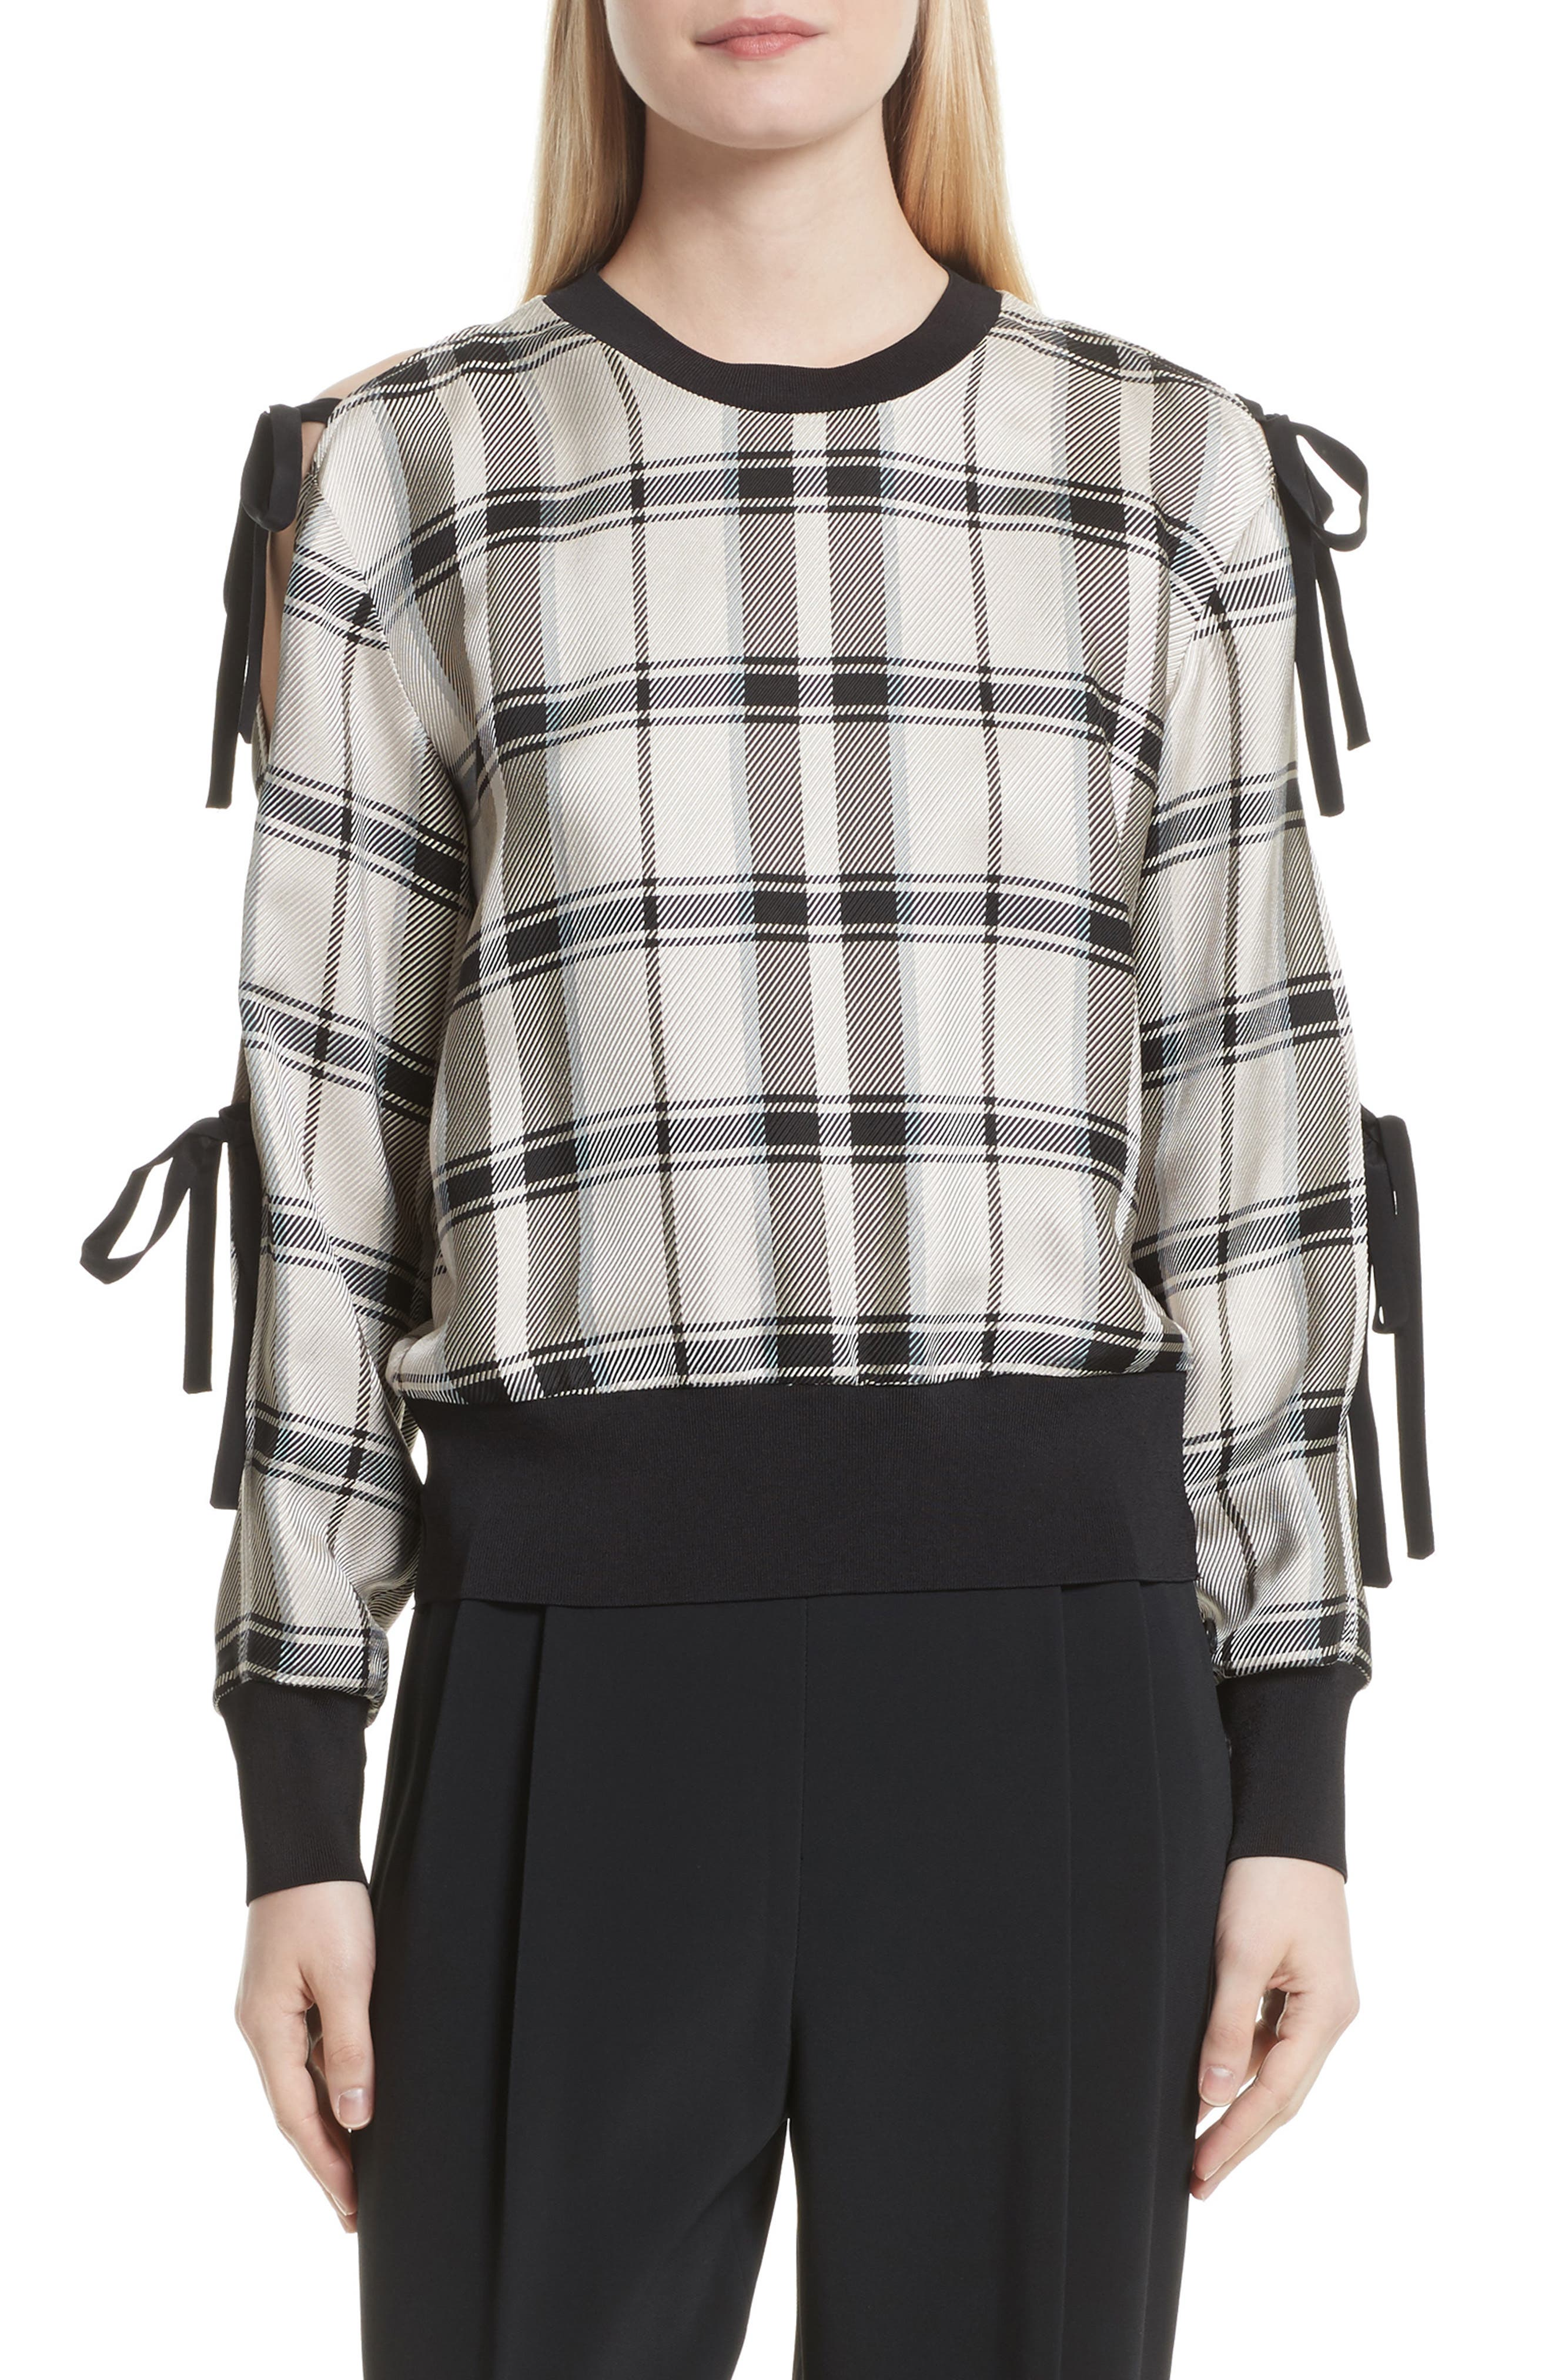 Alternate Image 1 Selected - 3.1 Phillip Lim Tie Sleeve Check Pullover